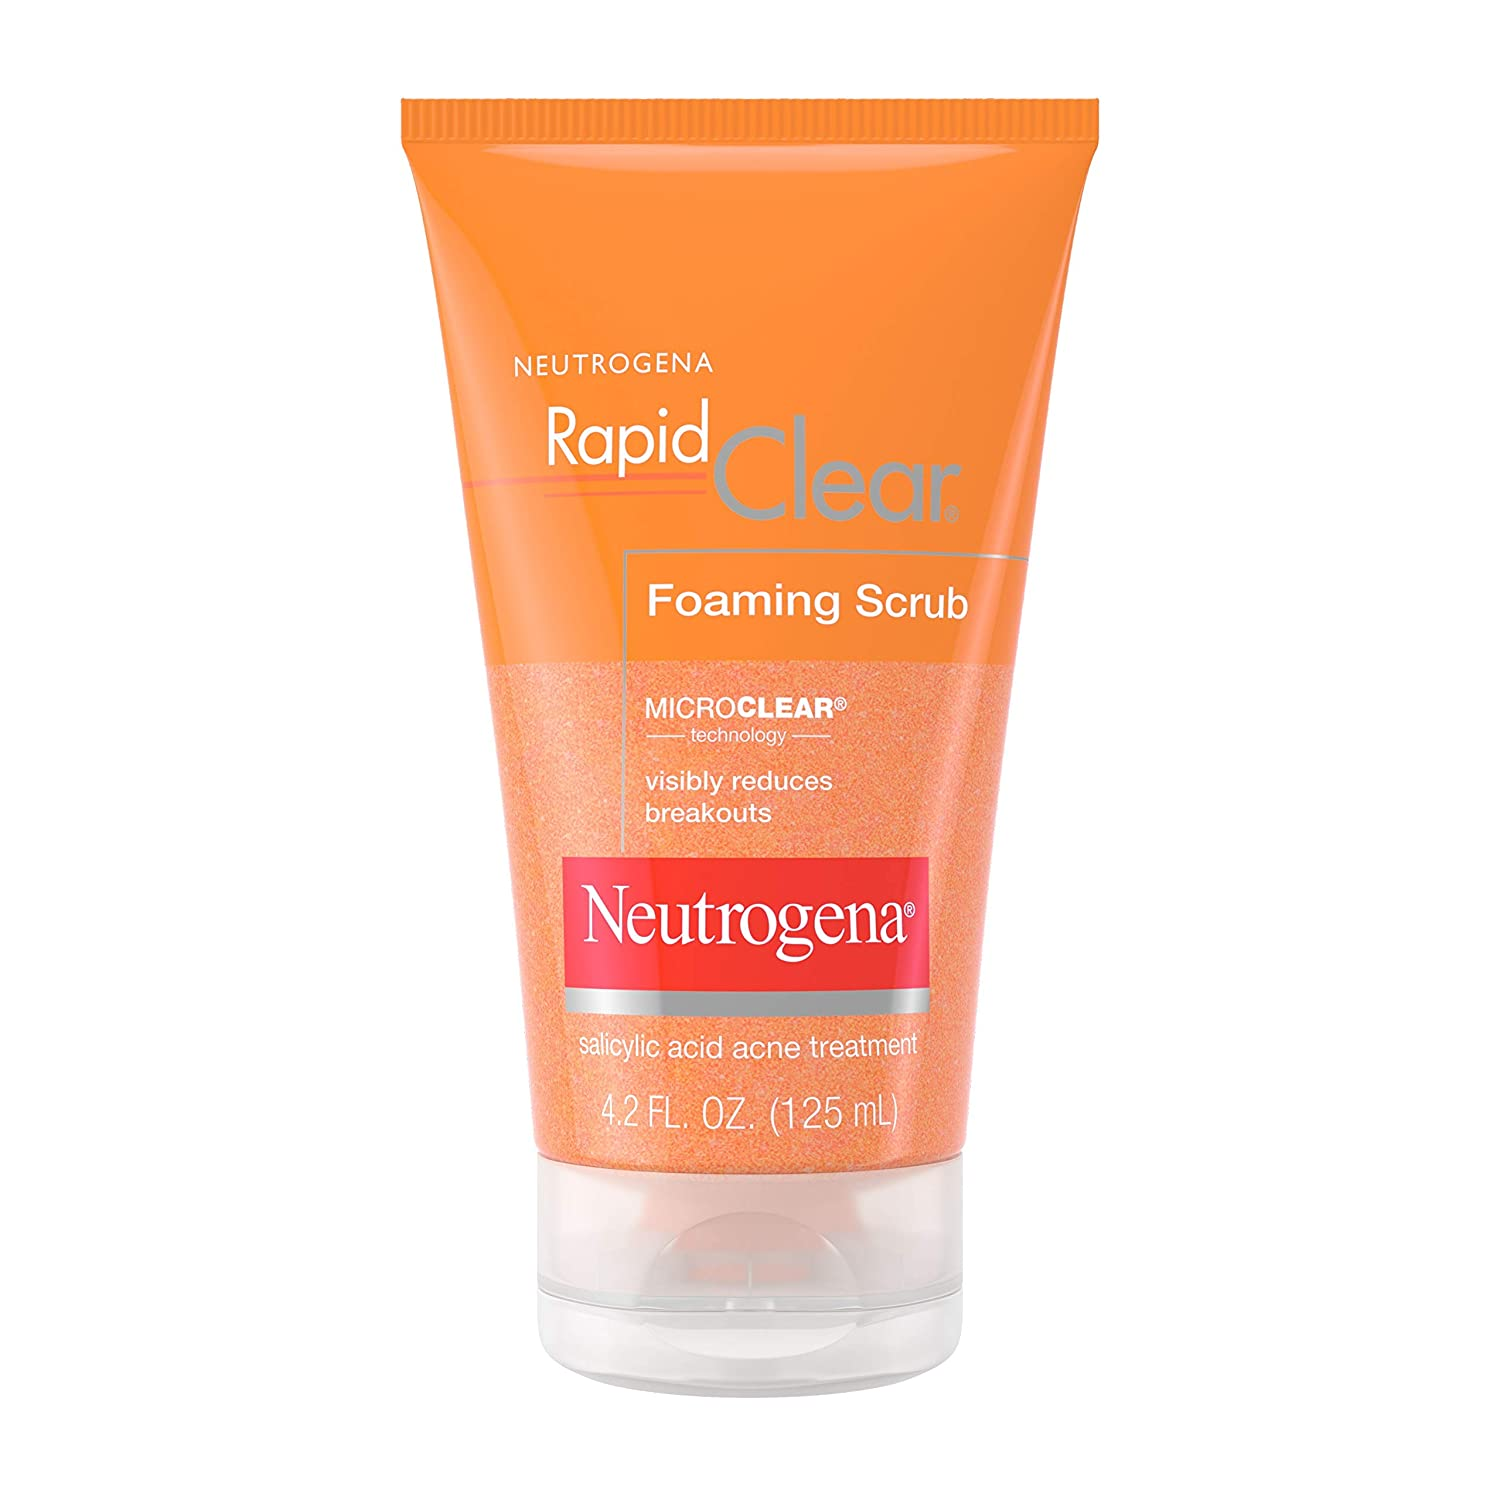 Neutrogena Rapid Clear Foaming Exfoliating Facial Scrub with Salicylic Acid Acne Medicine For Breakouts and Acne-Prone Skin, 4.2 fl. oz: Beauty